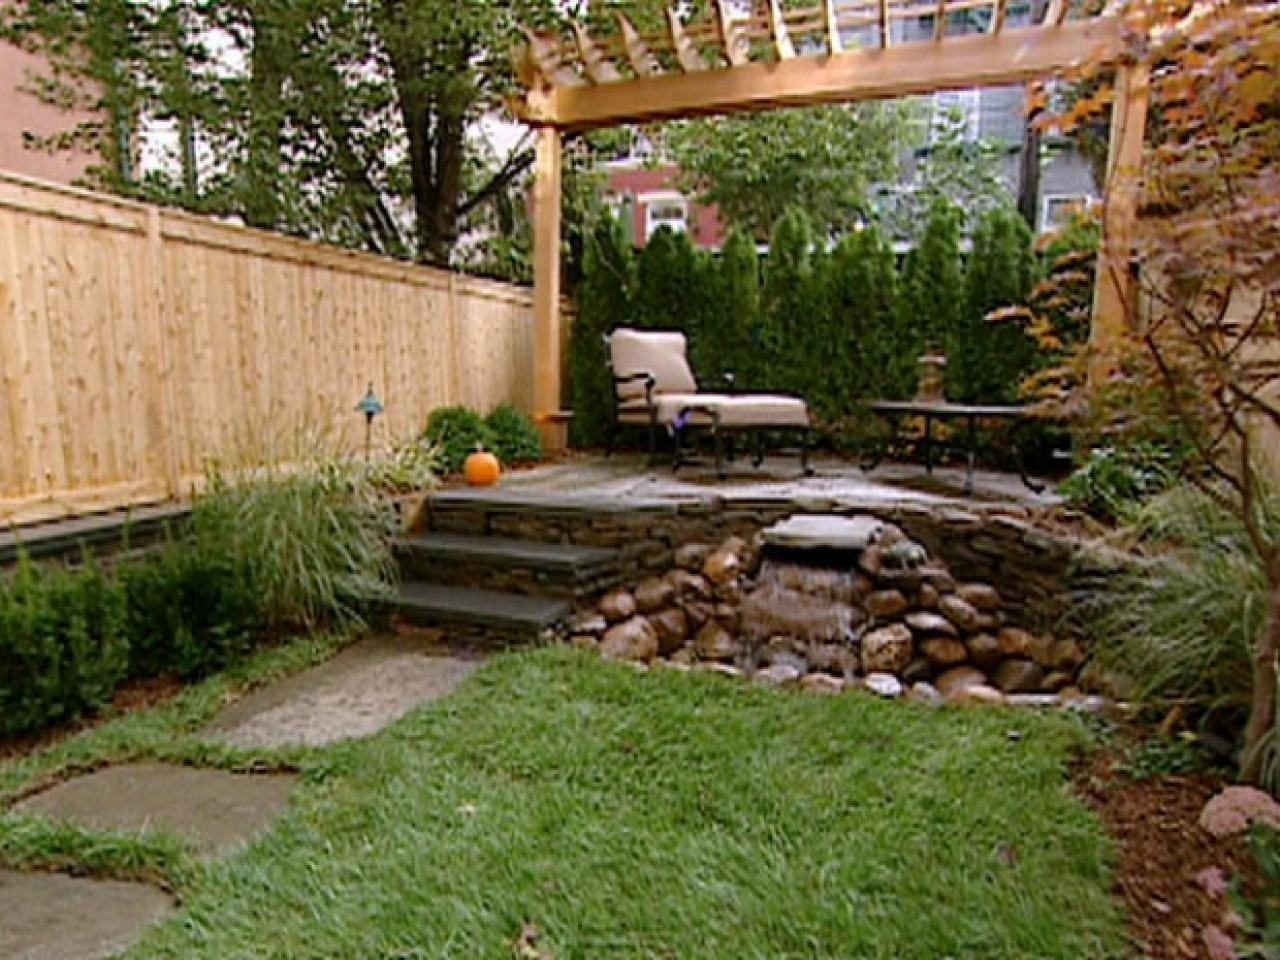 10 Stylish Landscape Ideas For Small Yards backyard front yard landscape plans small ideas low maintenance